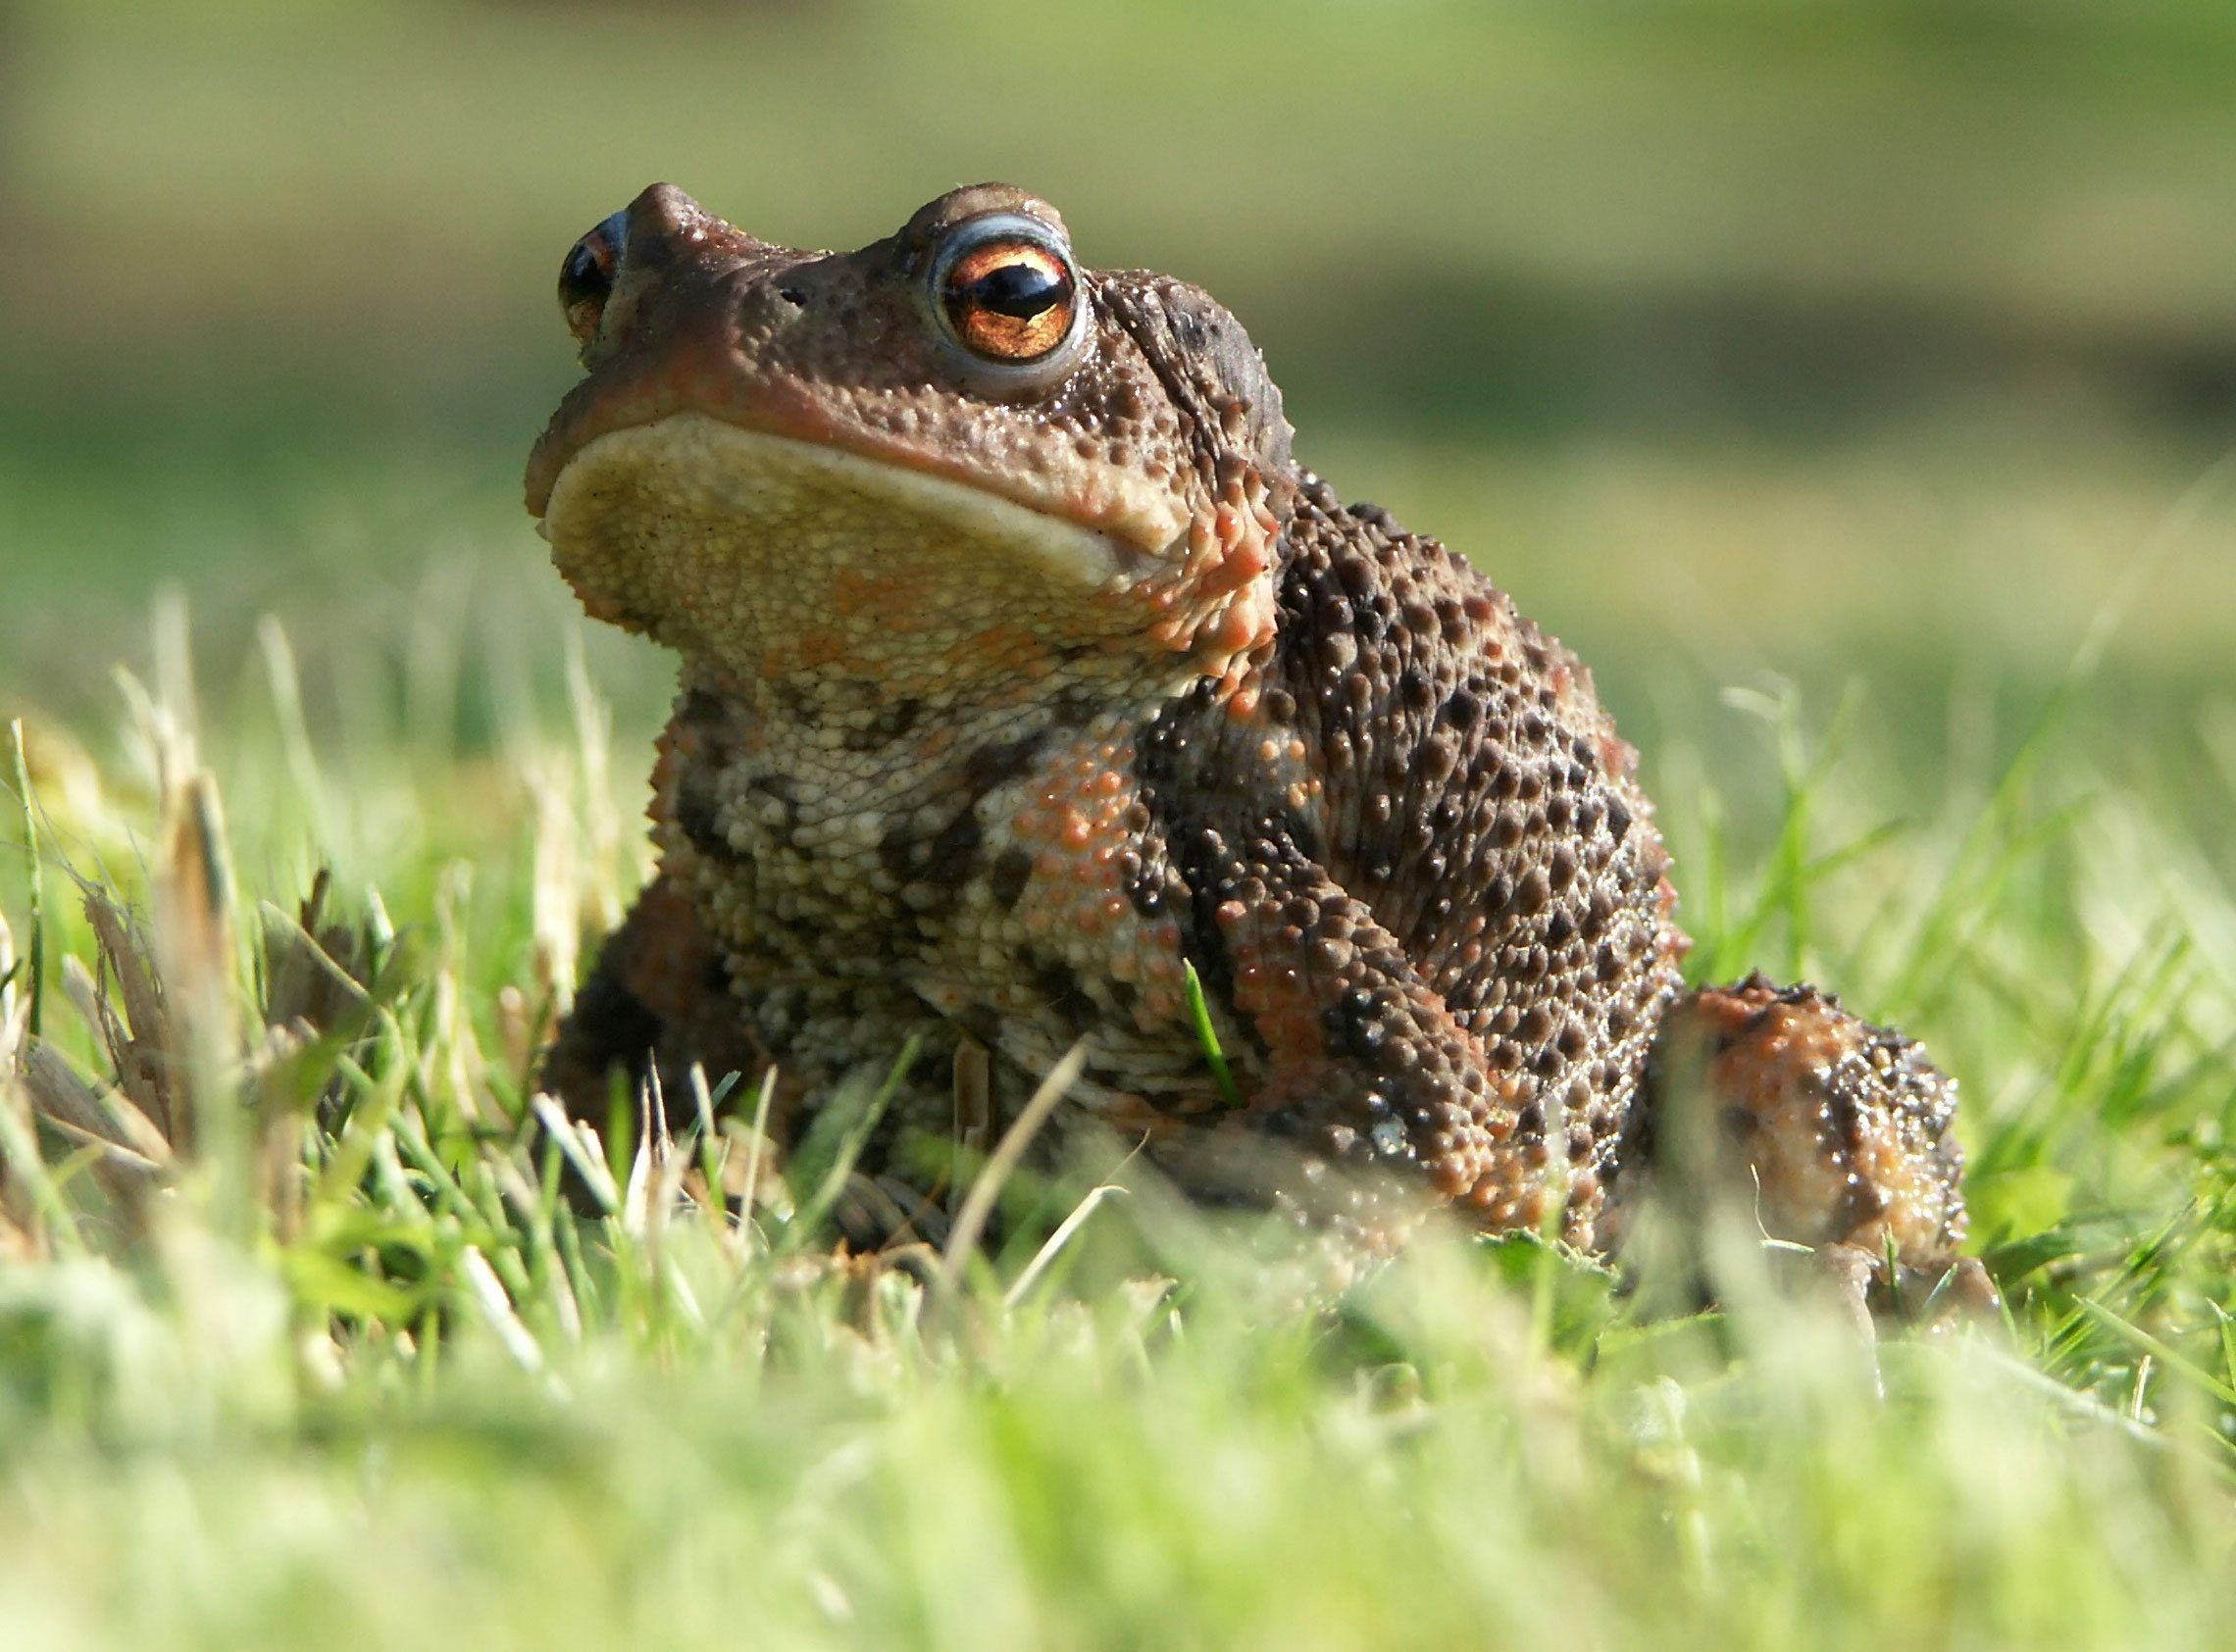 Toad Control: How To Get Rid Of Garden Toads in 2020 ...